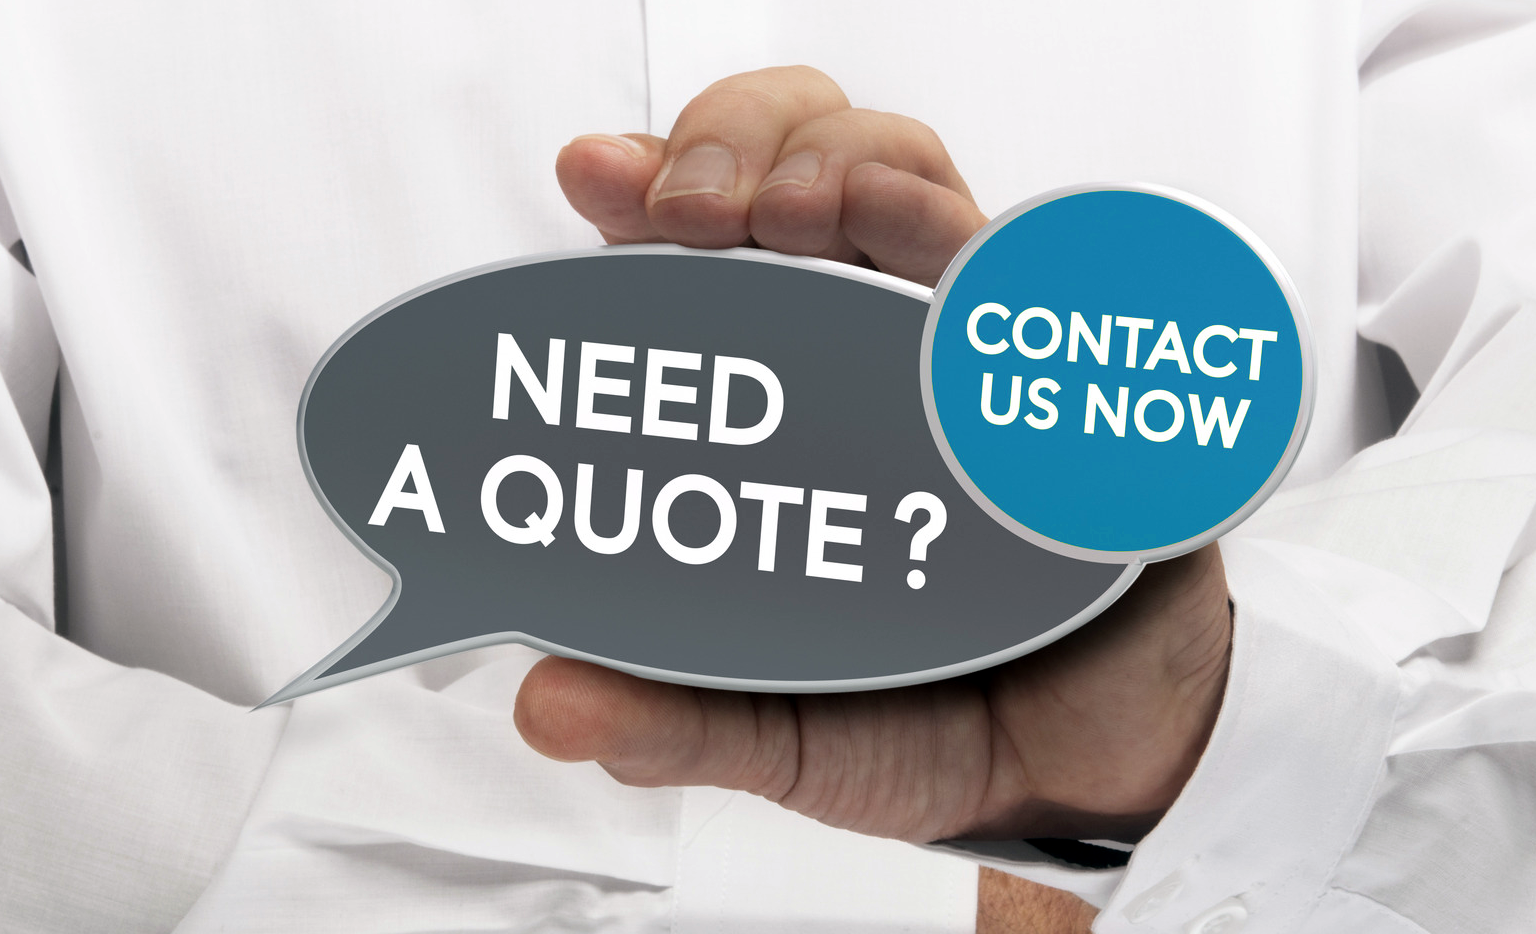 1. Request a Quote